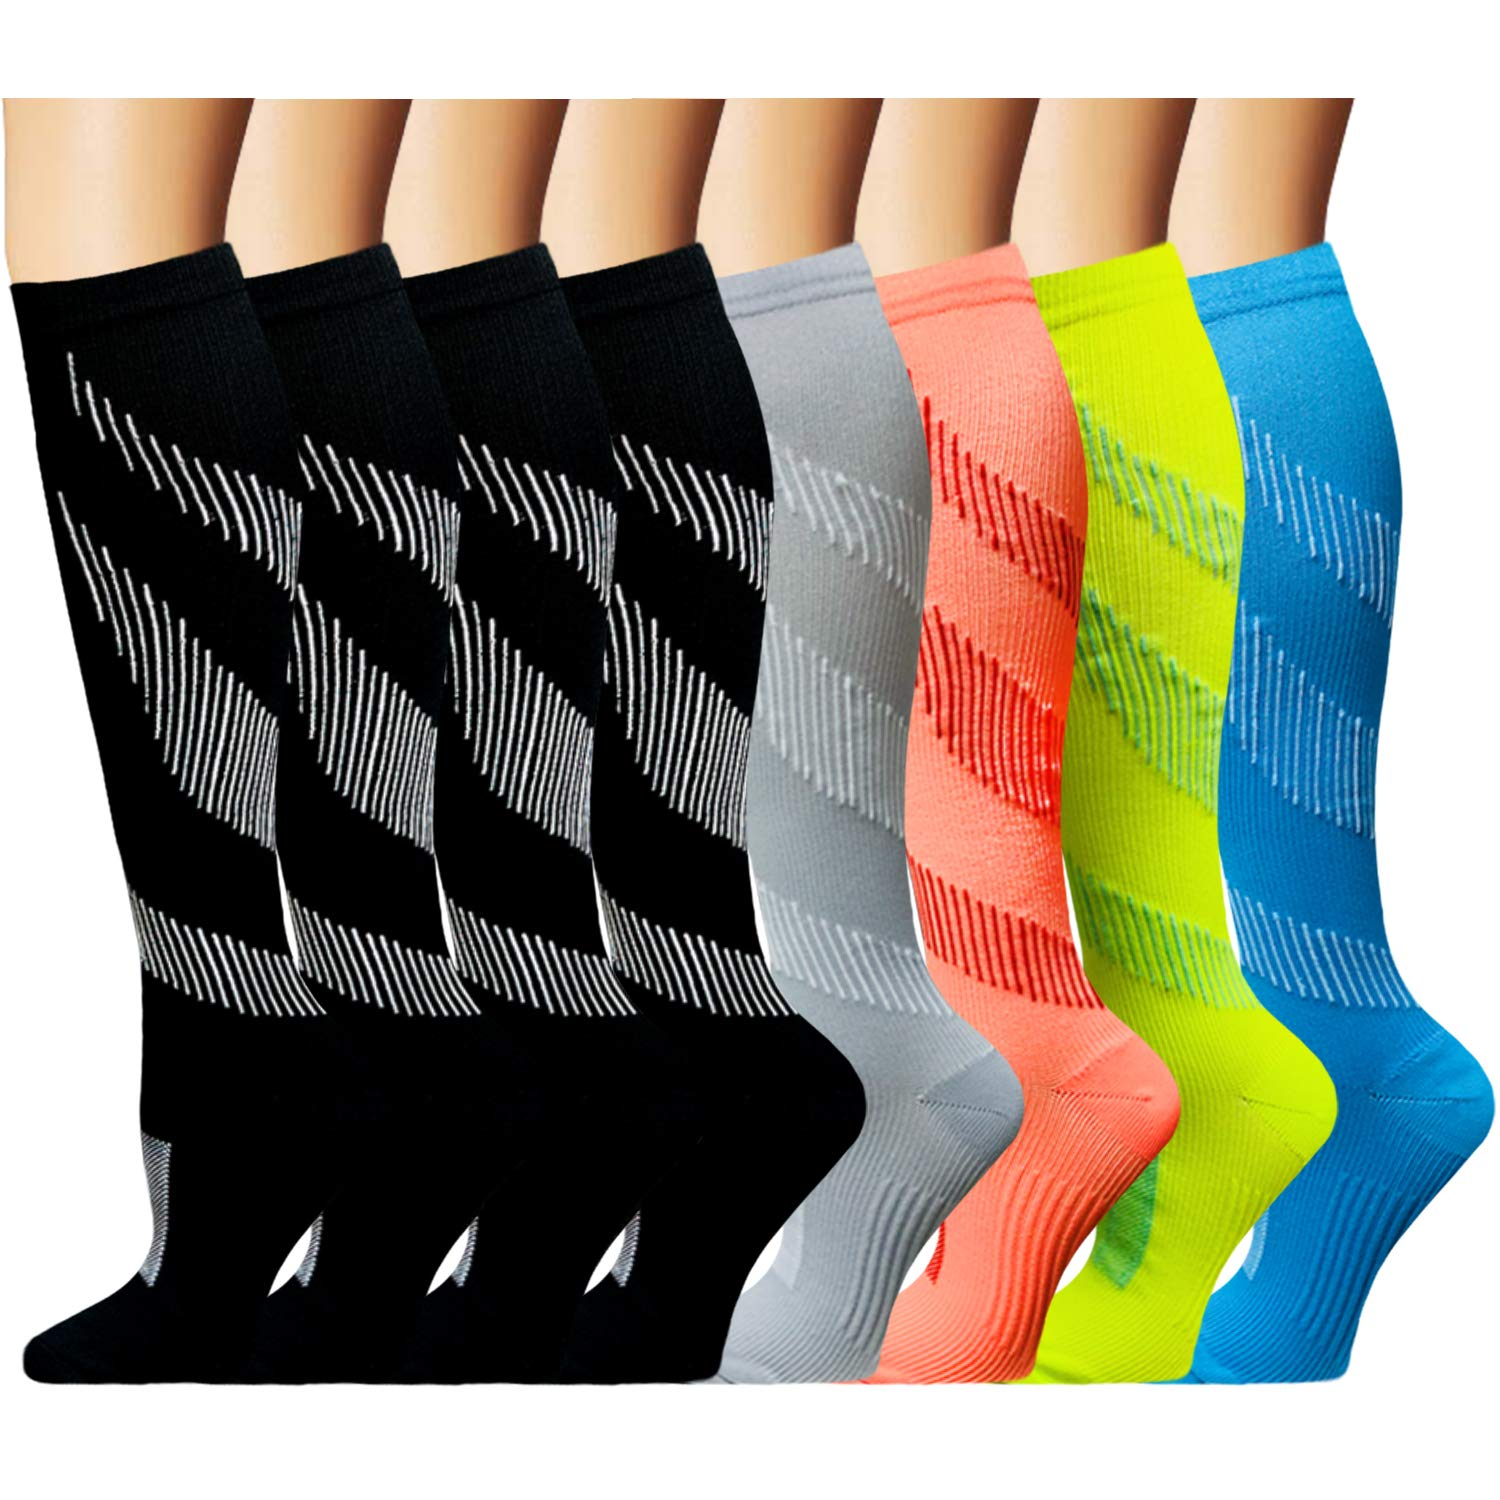 Compression Sock for Women & Men (8 Pairs)- Best Medical for Running, Athletic Sports, Crossfit, Fitness(S/M) by Iseasoo